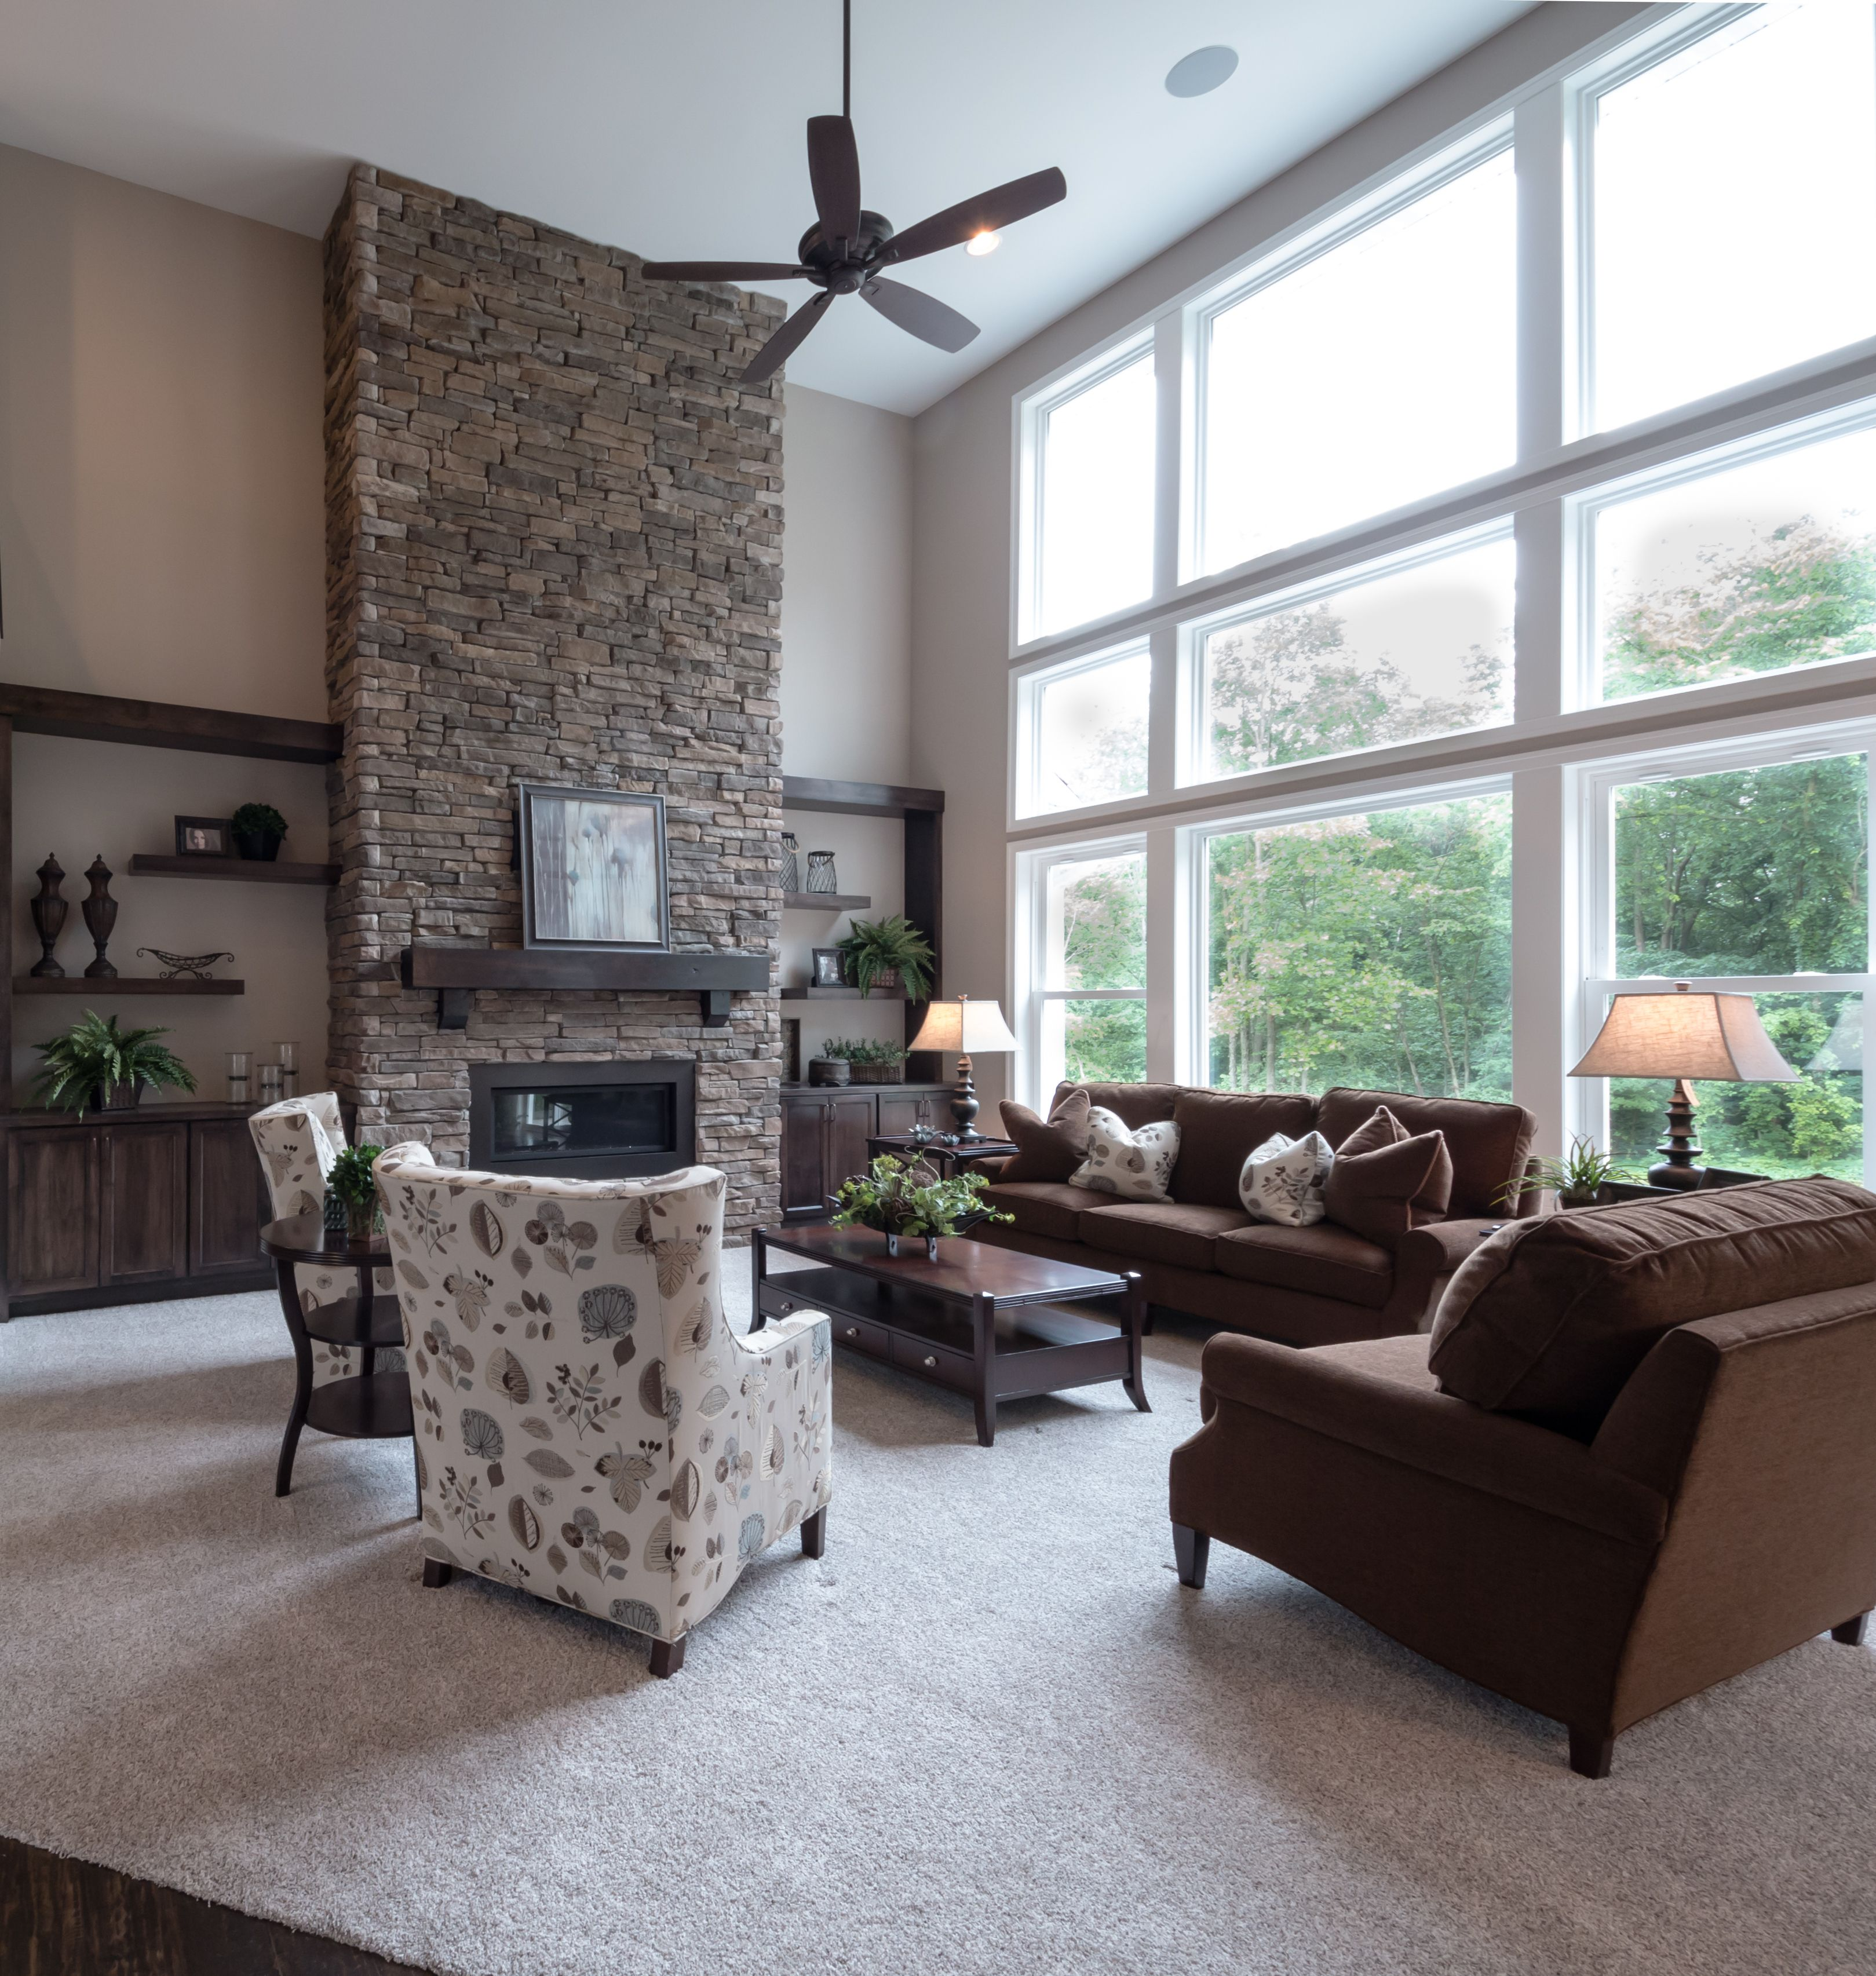 Large Ceiling Fan For Great Room: Floor To Ceiling Stone Surround Gas Fireplace With Custom